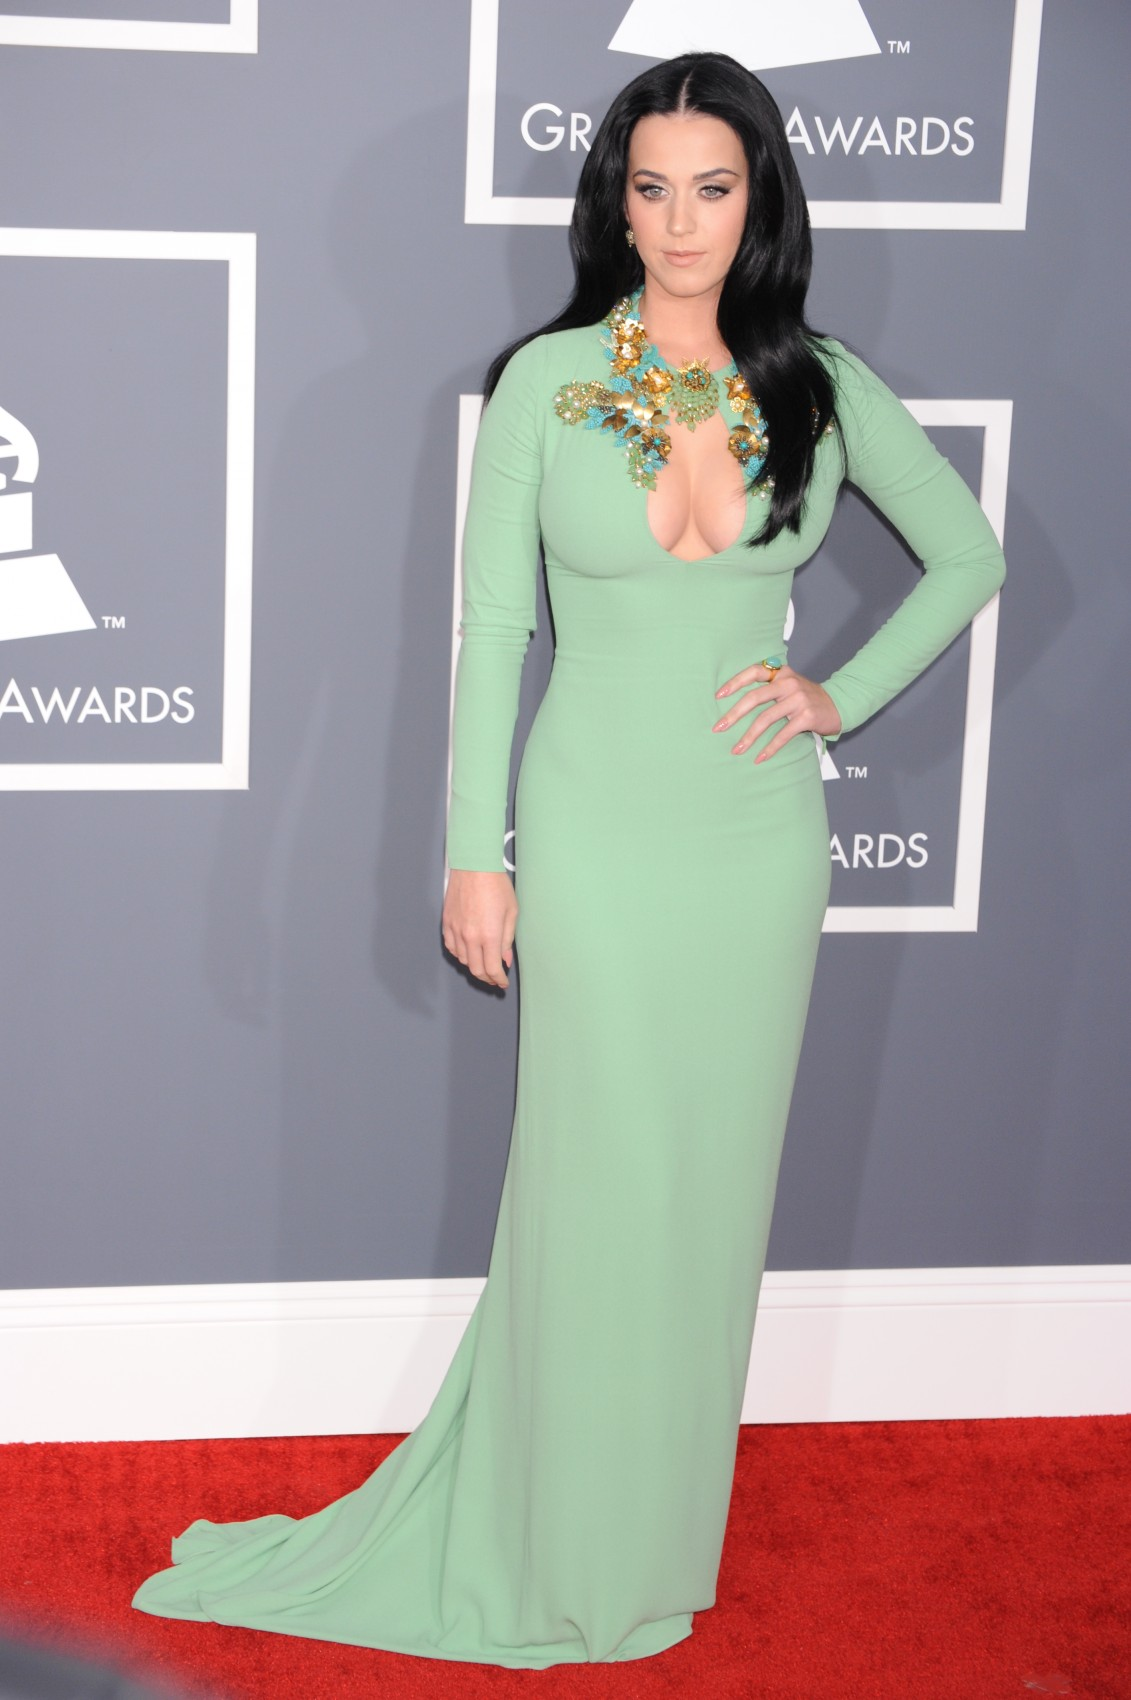 13. Katy Perry